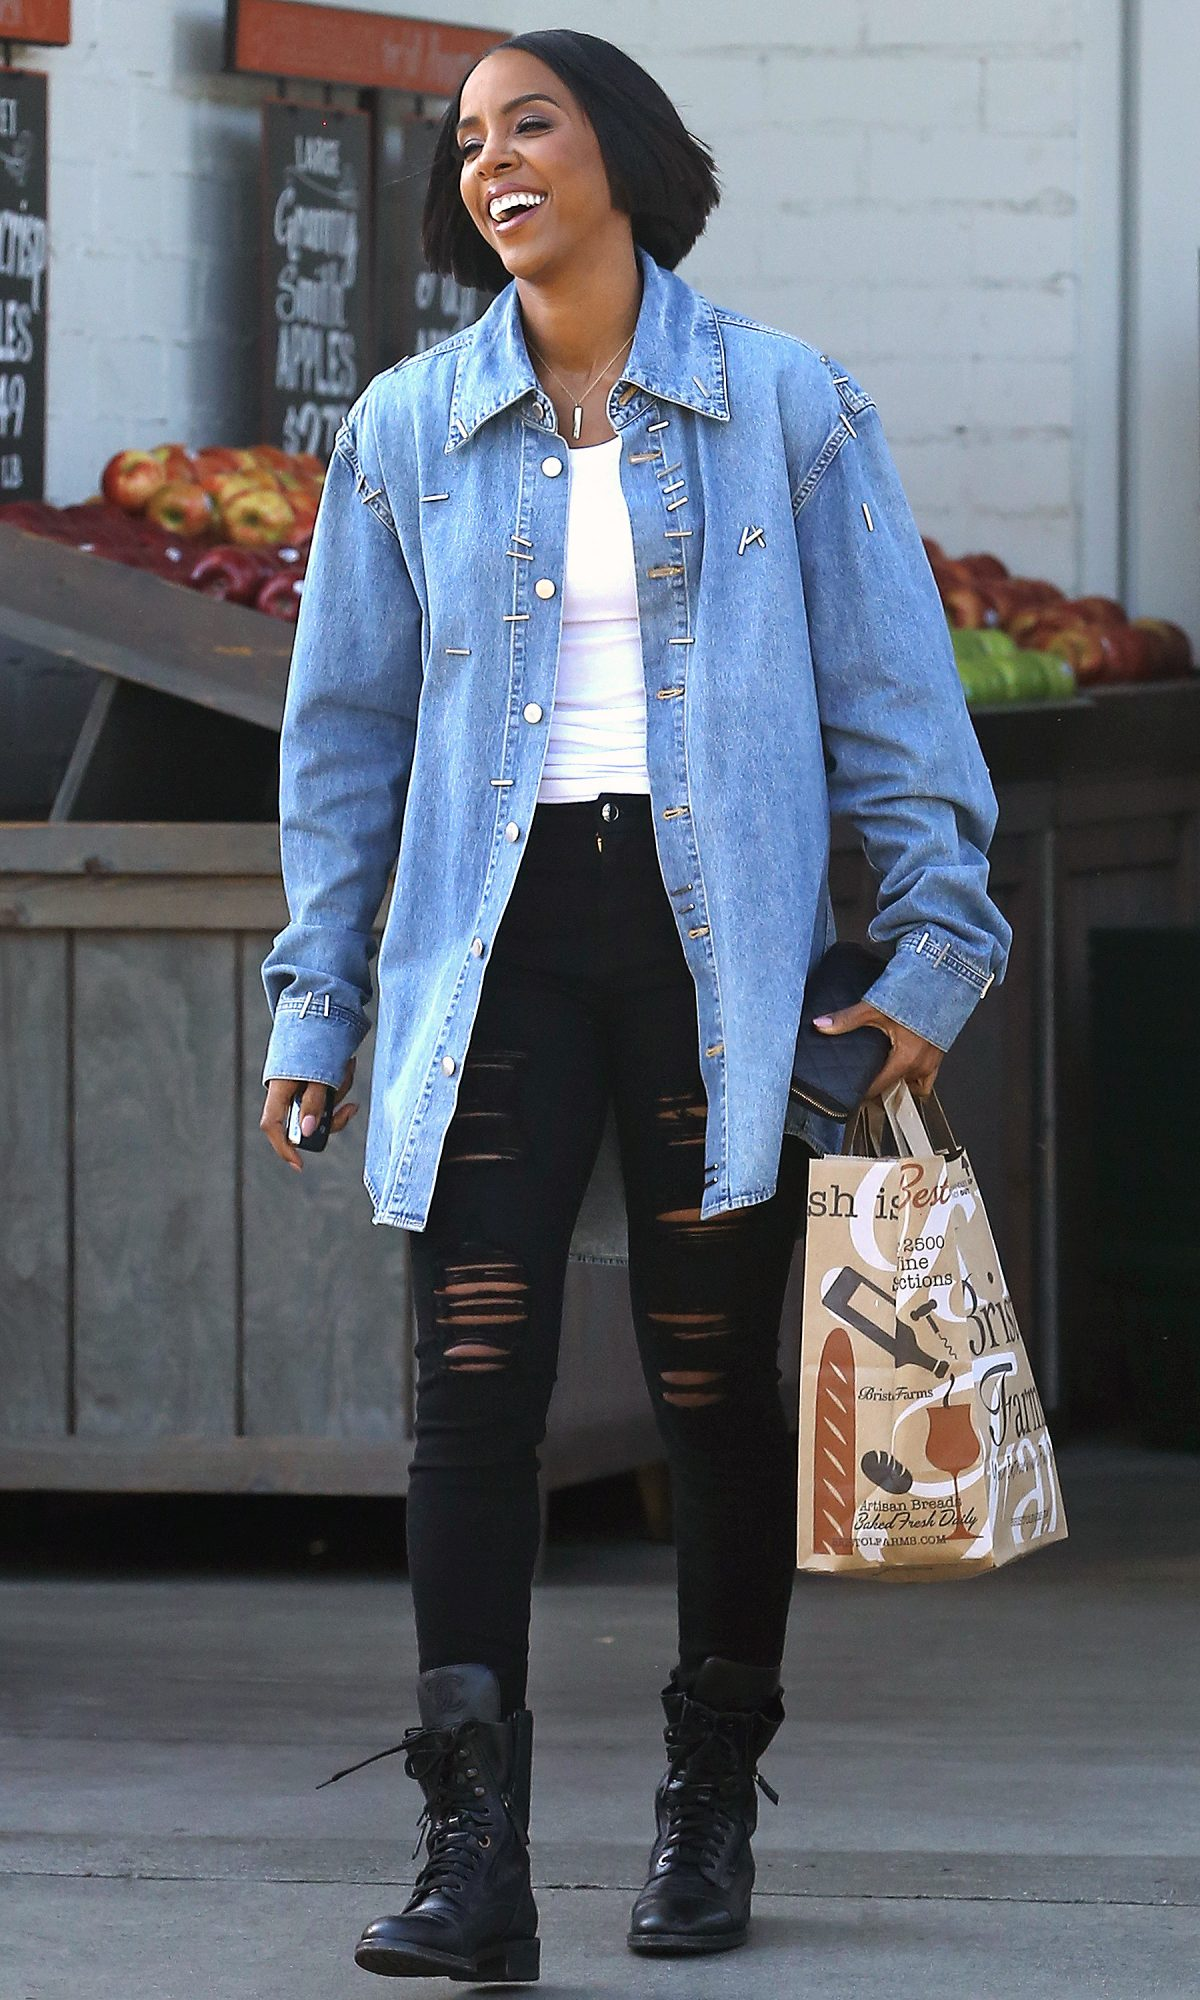 *EXCLUSIVE* Kelly Rowland beams as she leaves Bristol Farms after shopping with a friend